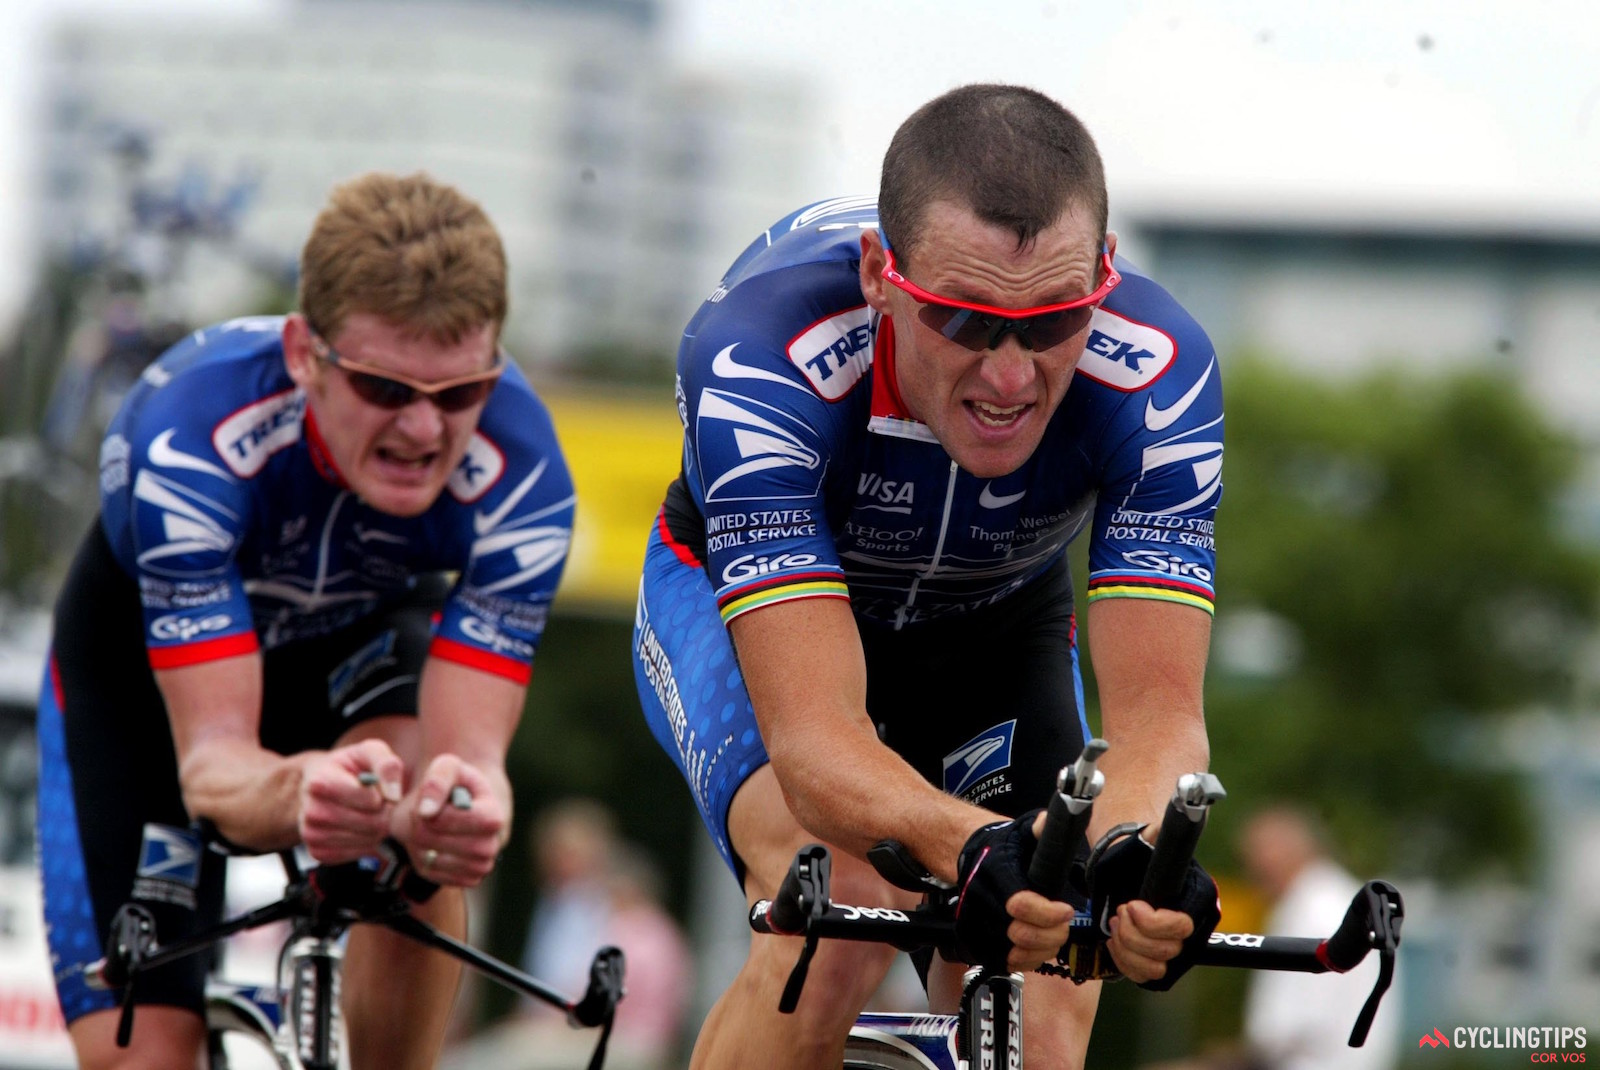 Floyd Landis and Lance Armstrong at the 2002 G.P. Karlsruhe. Photo: Cor Vos.